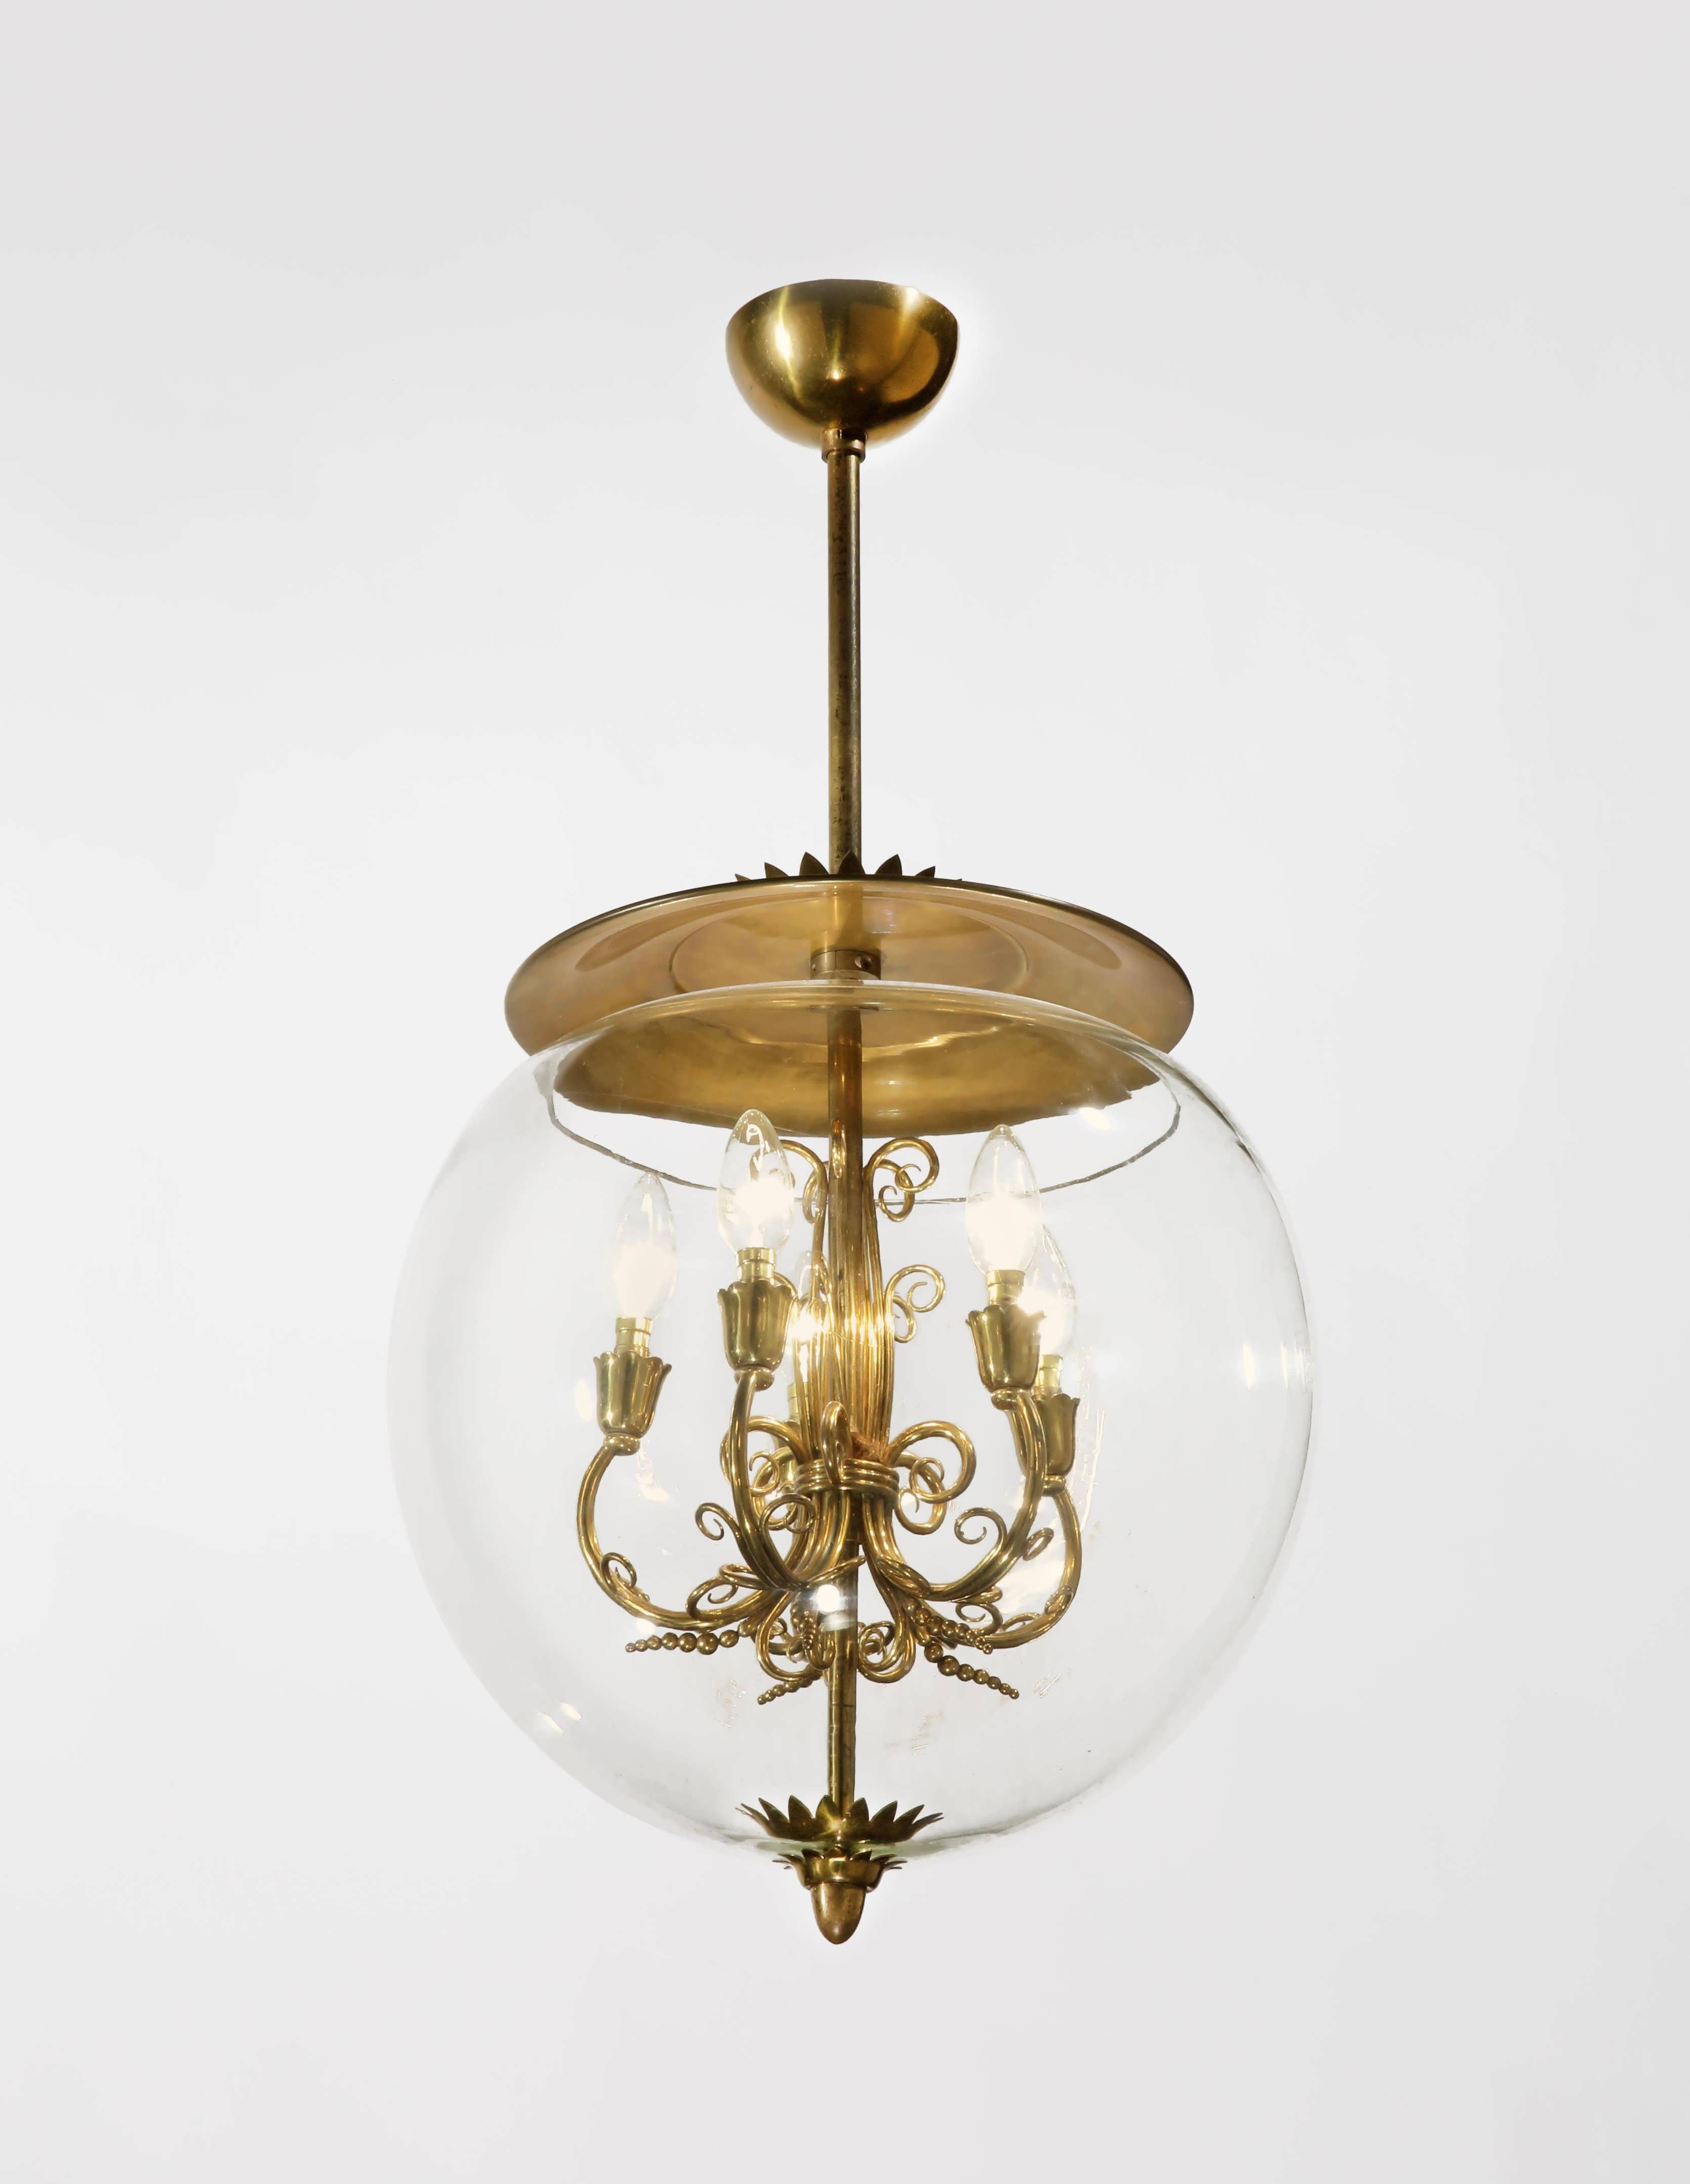 Pretty Replacement Globes For Bathroom Light Fixtures Globe Fixture Uk Glass Shades 4187 Home Vanity Light Shade Replacement Glass Shades Globe Chandelier